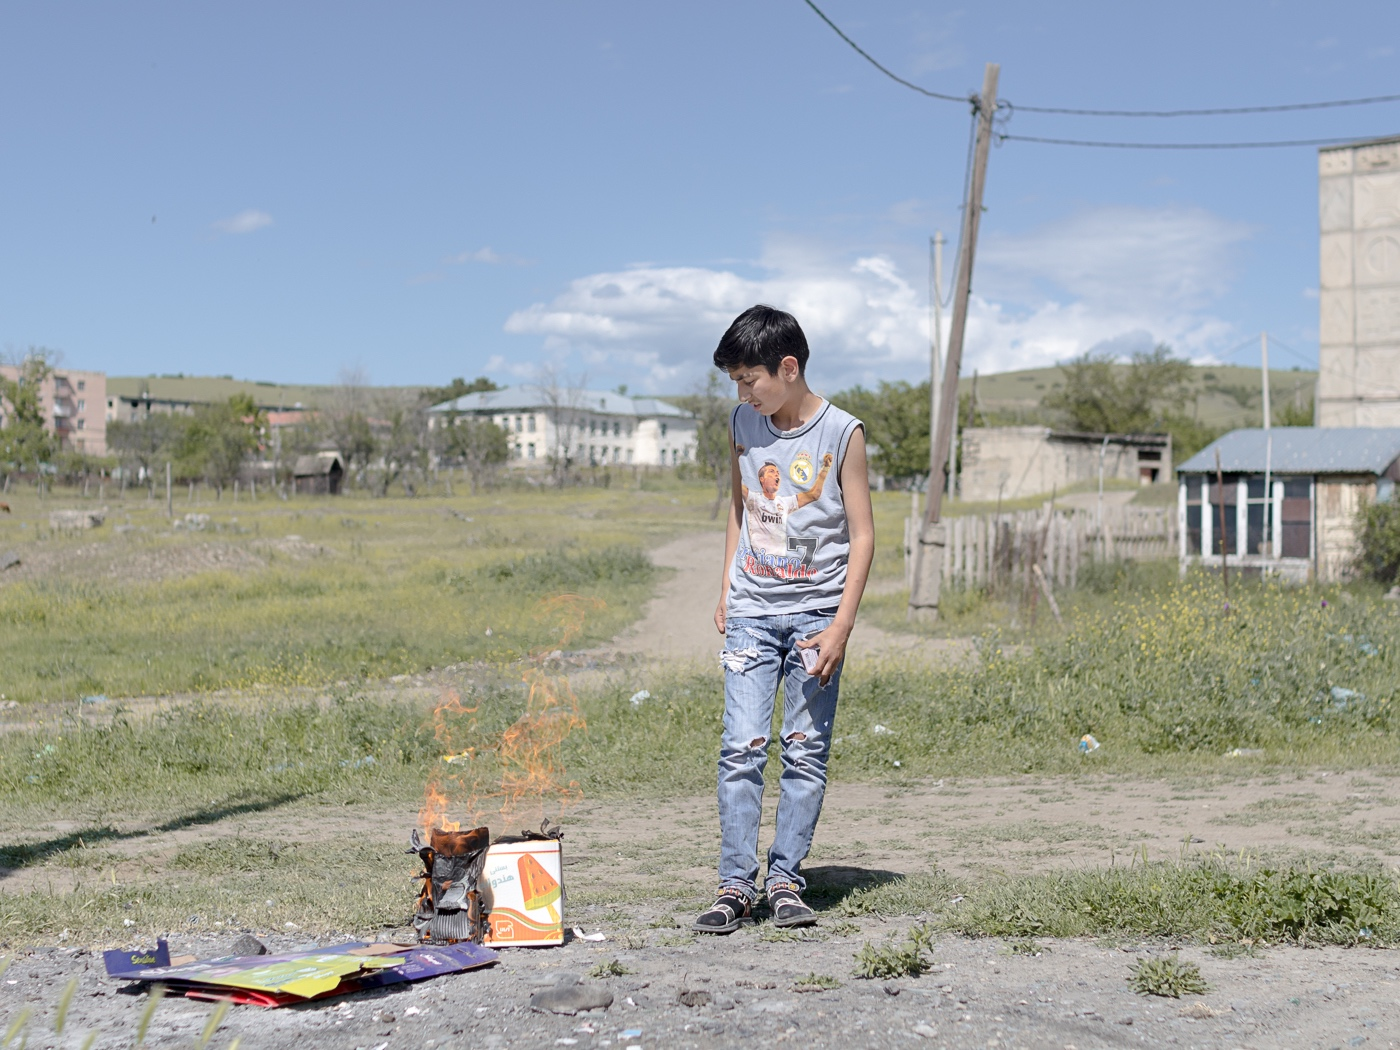 A boy burns collected garbage in the center of the settlement. Children struggle to find activities in Vaziani. The parents in the settlement worry about the future of their kids, thus they try to give them better prospects in life through education.